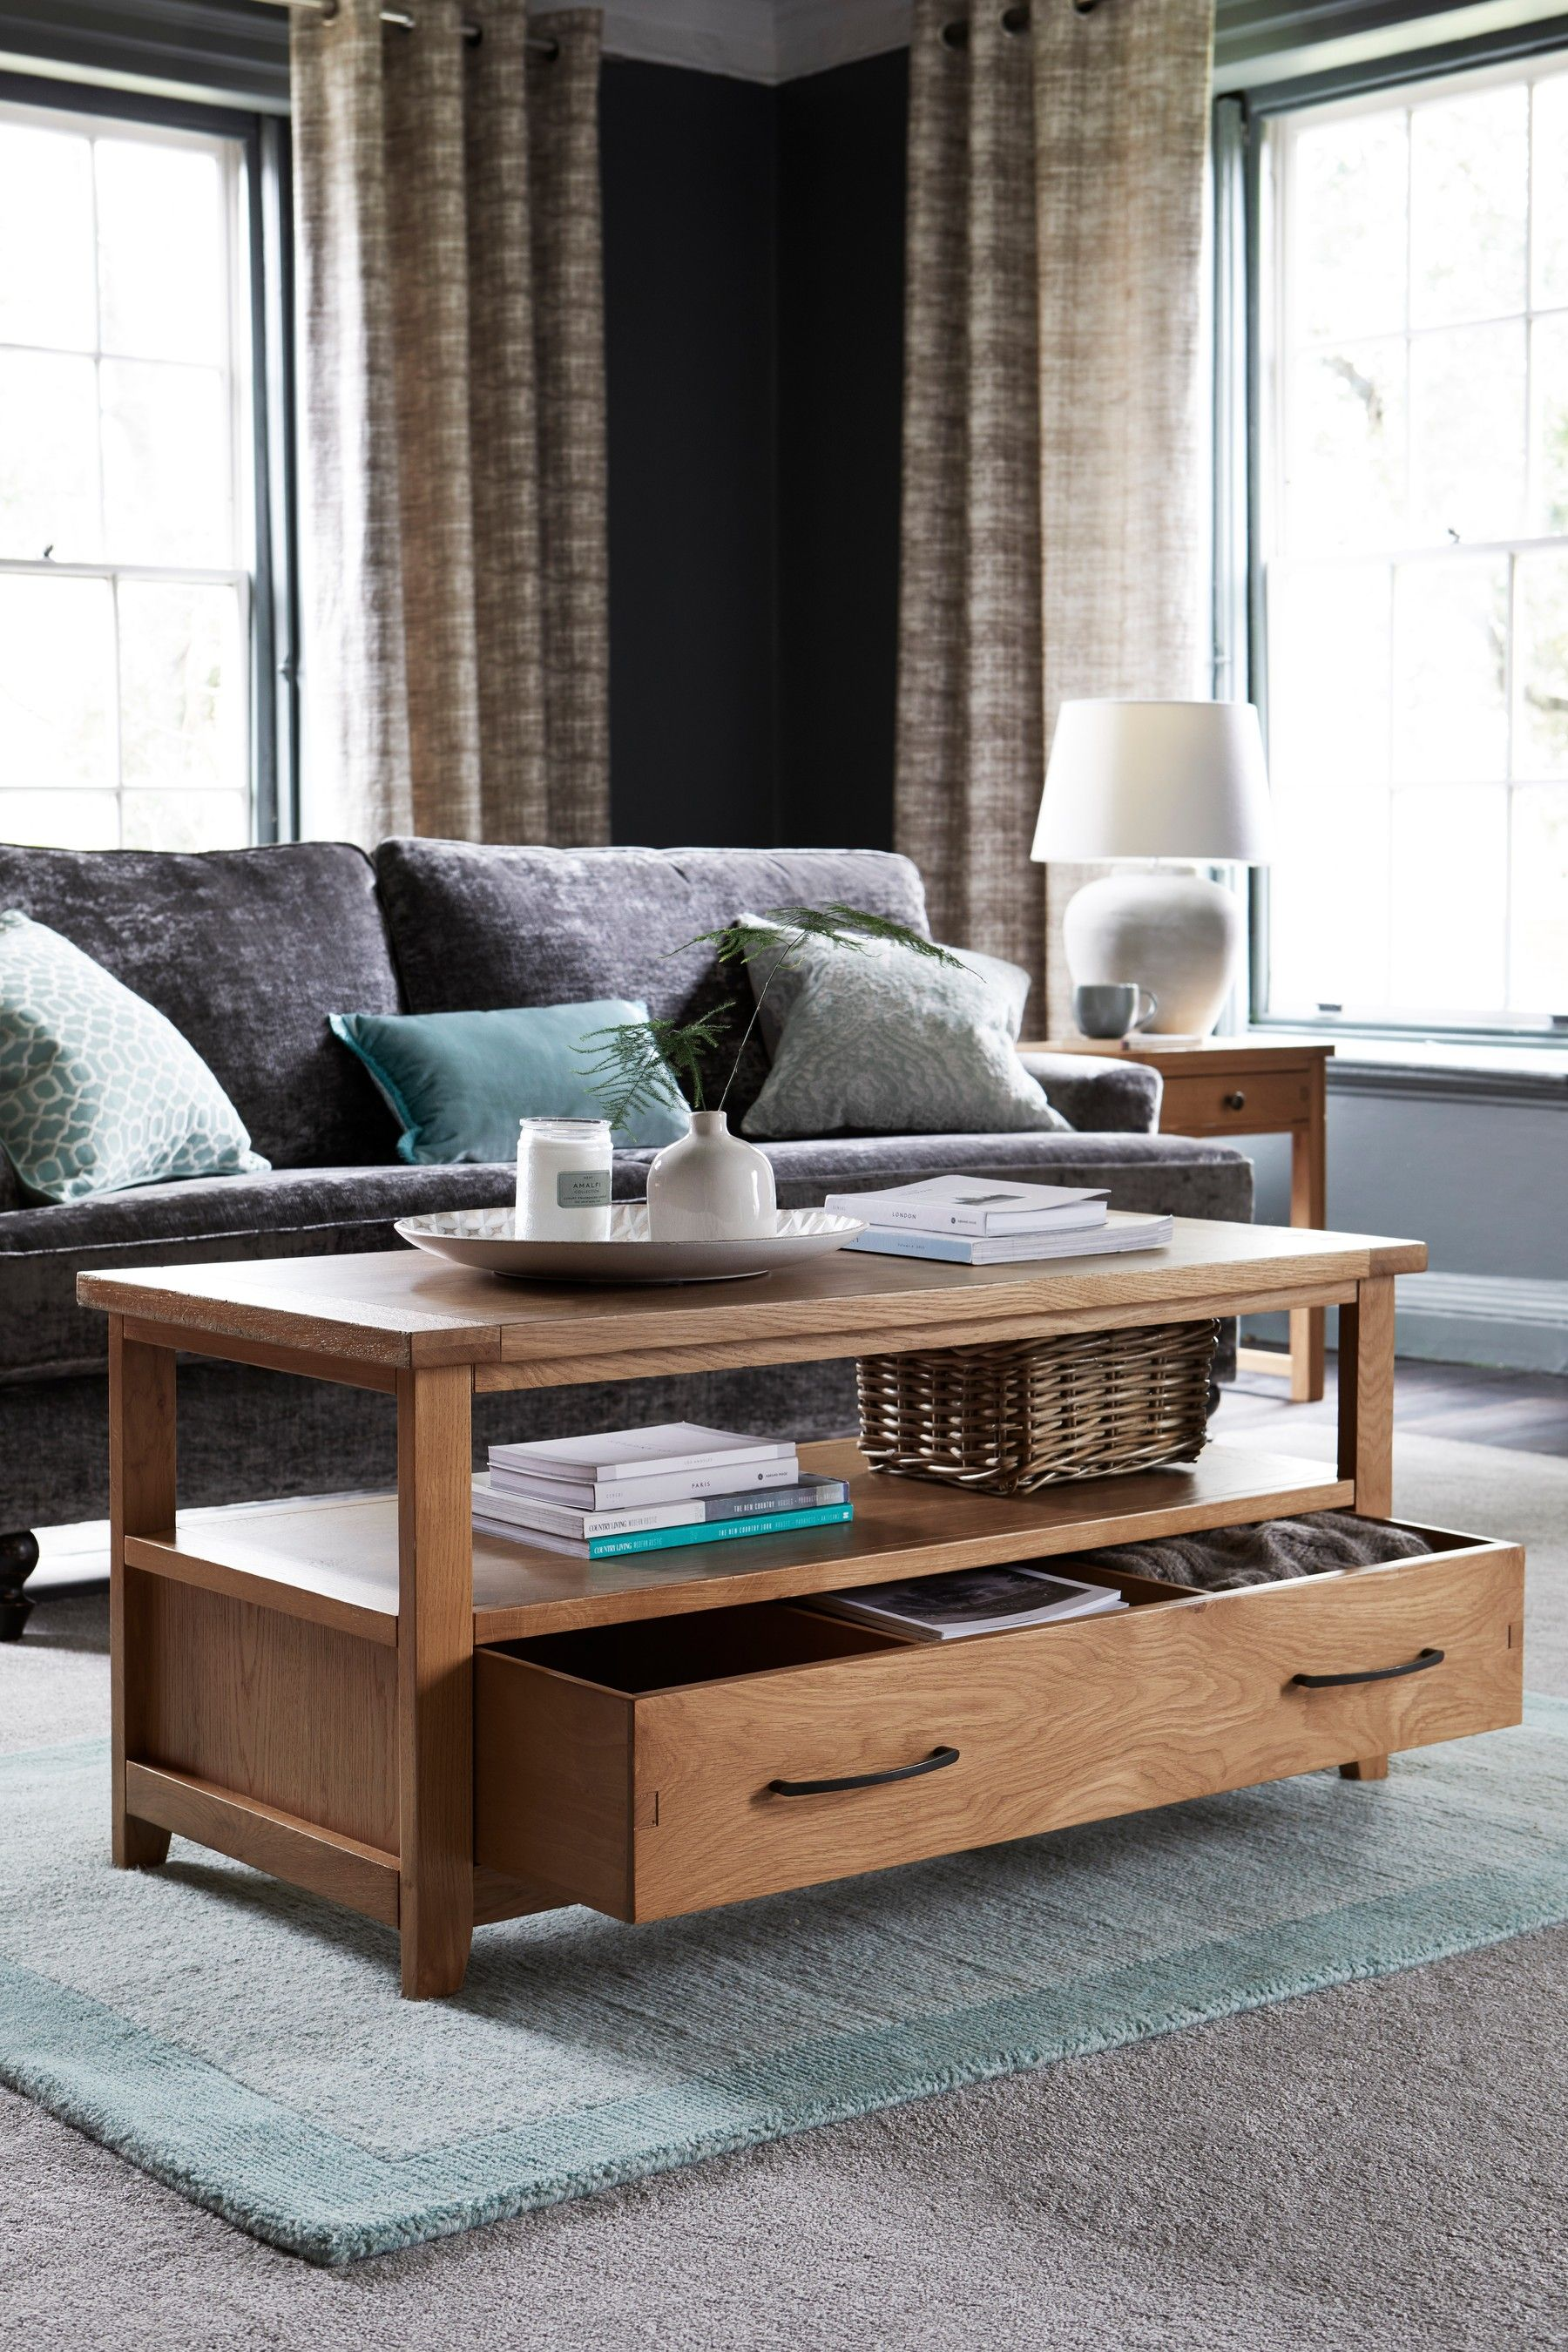 Next Thornley Oak Sideboard Natural In 2019 Country Style